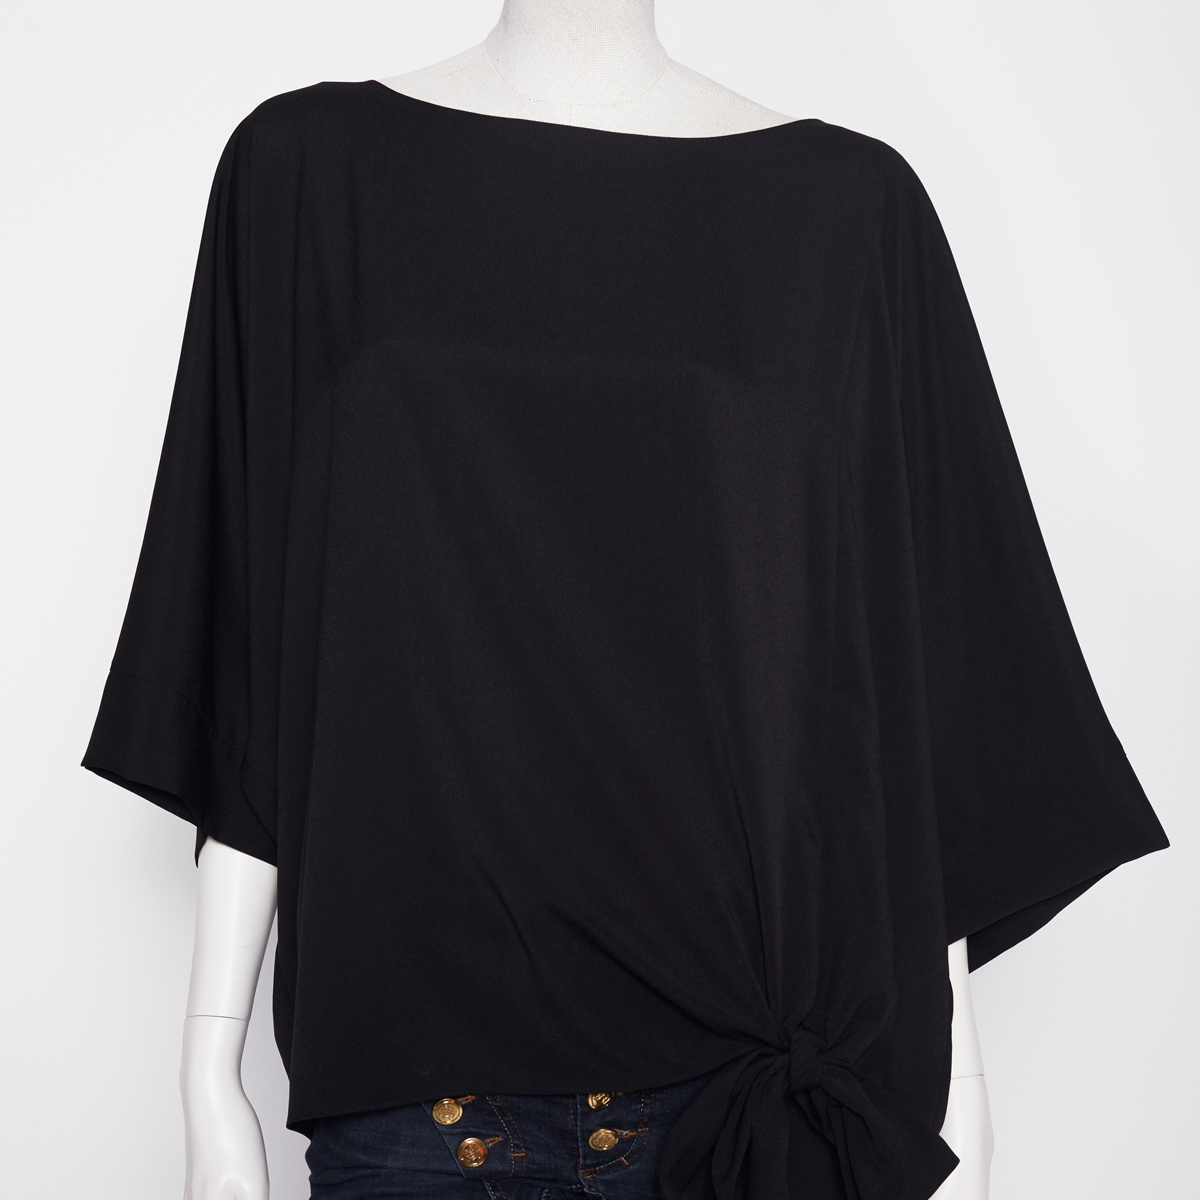 INTO THE OCEAN BLOUSE, BLACK